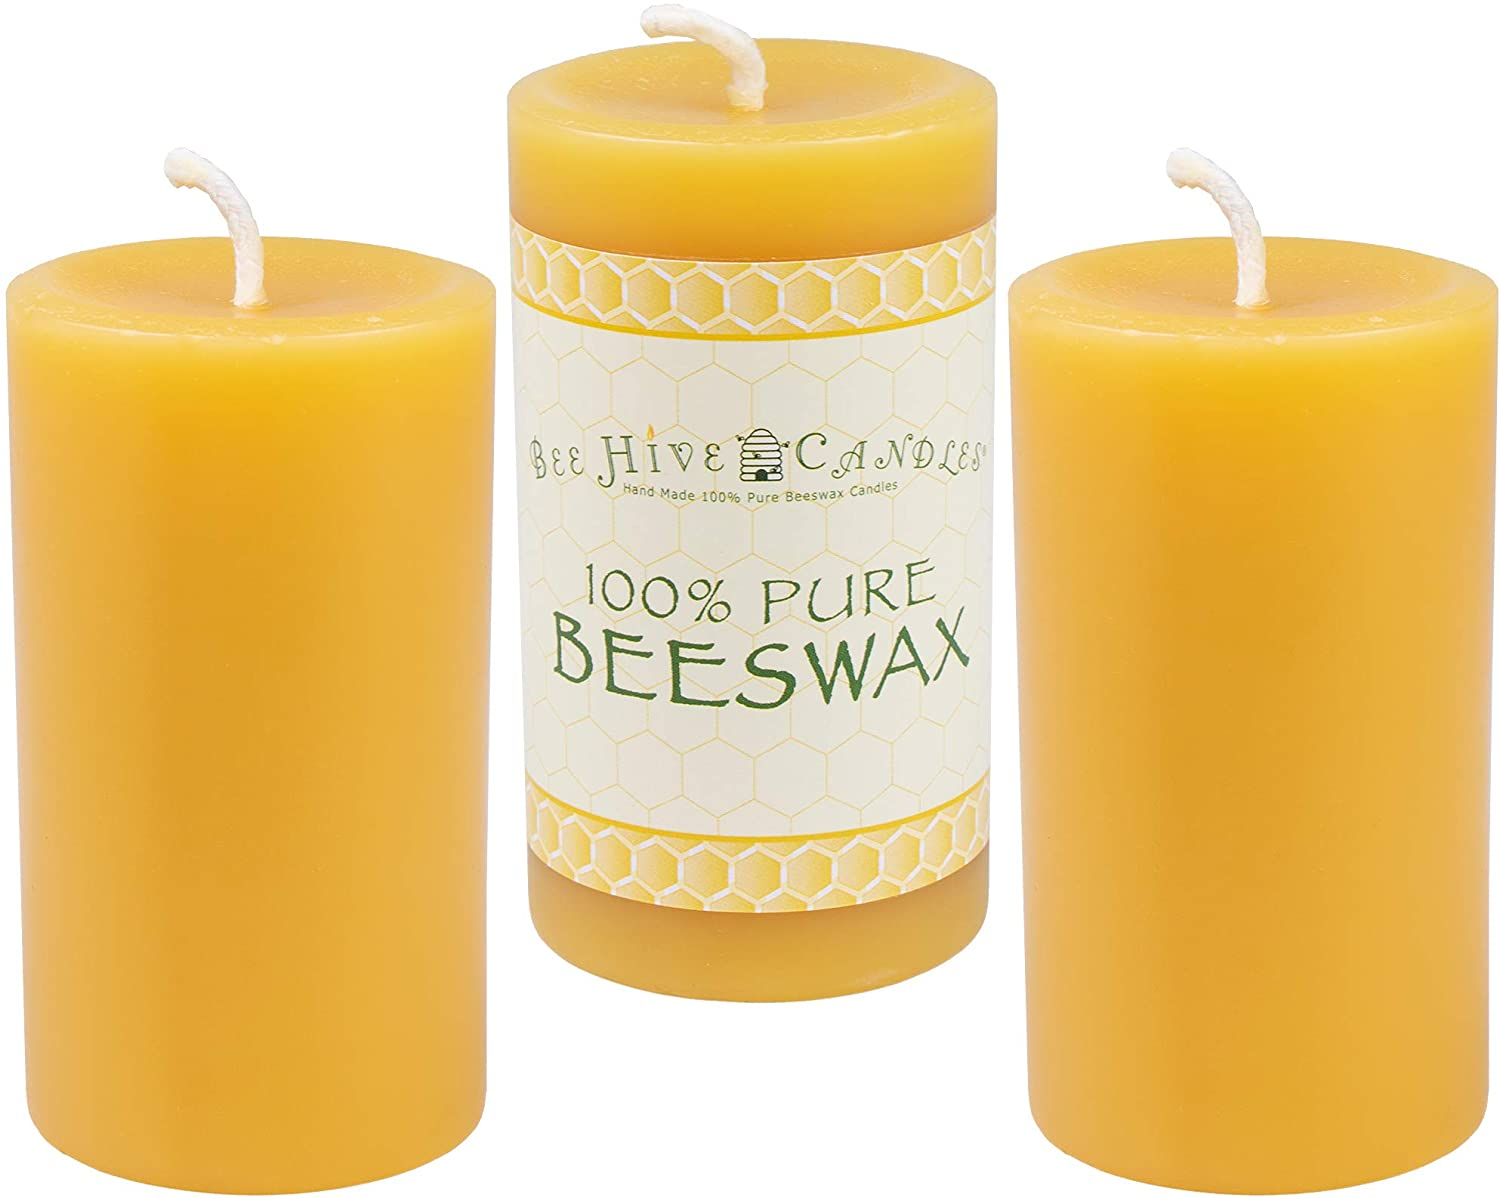 Amazon Com Bee Hive Candles 100 Pure Beeswax Pillar Candle 2 X 3 3 Pack Home Kitchen